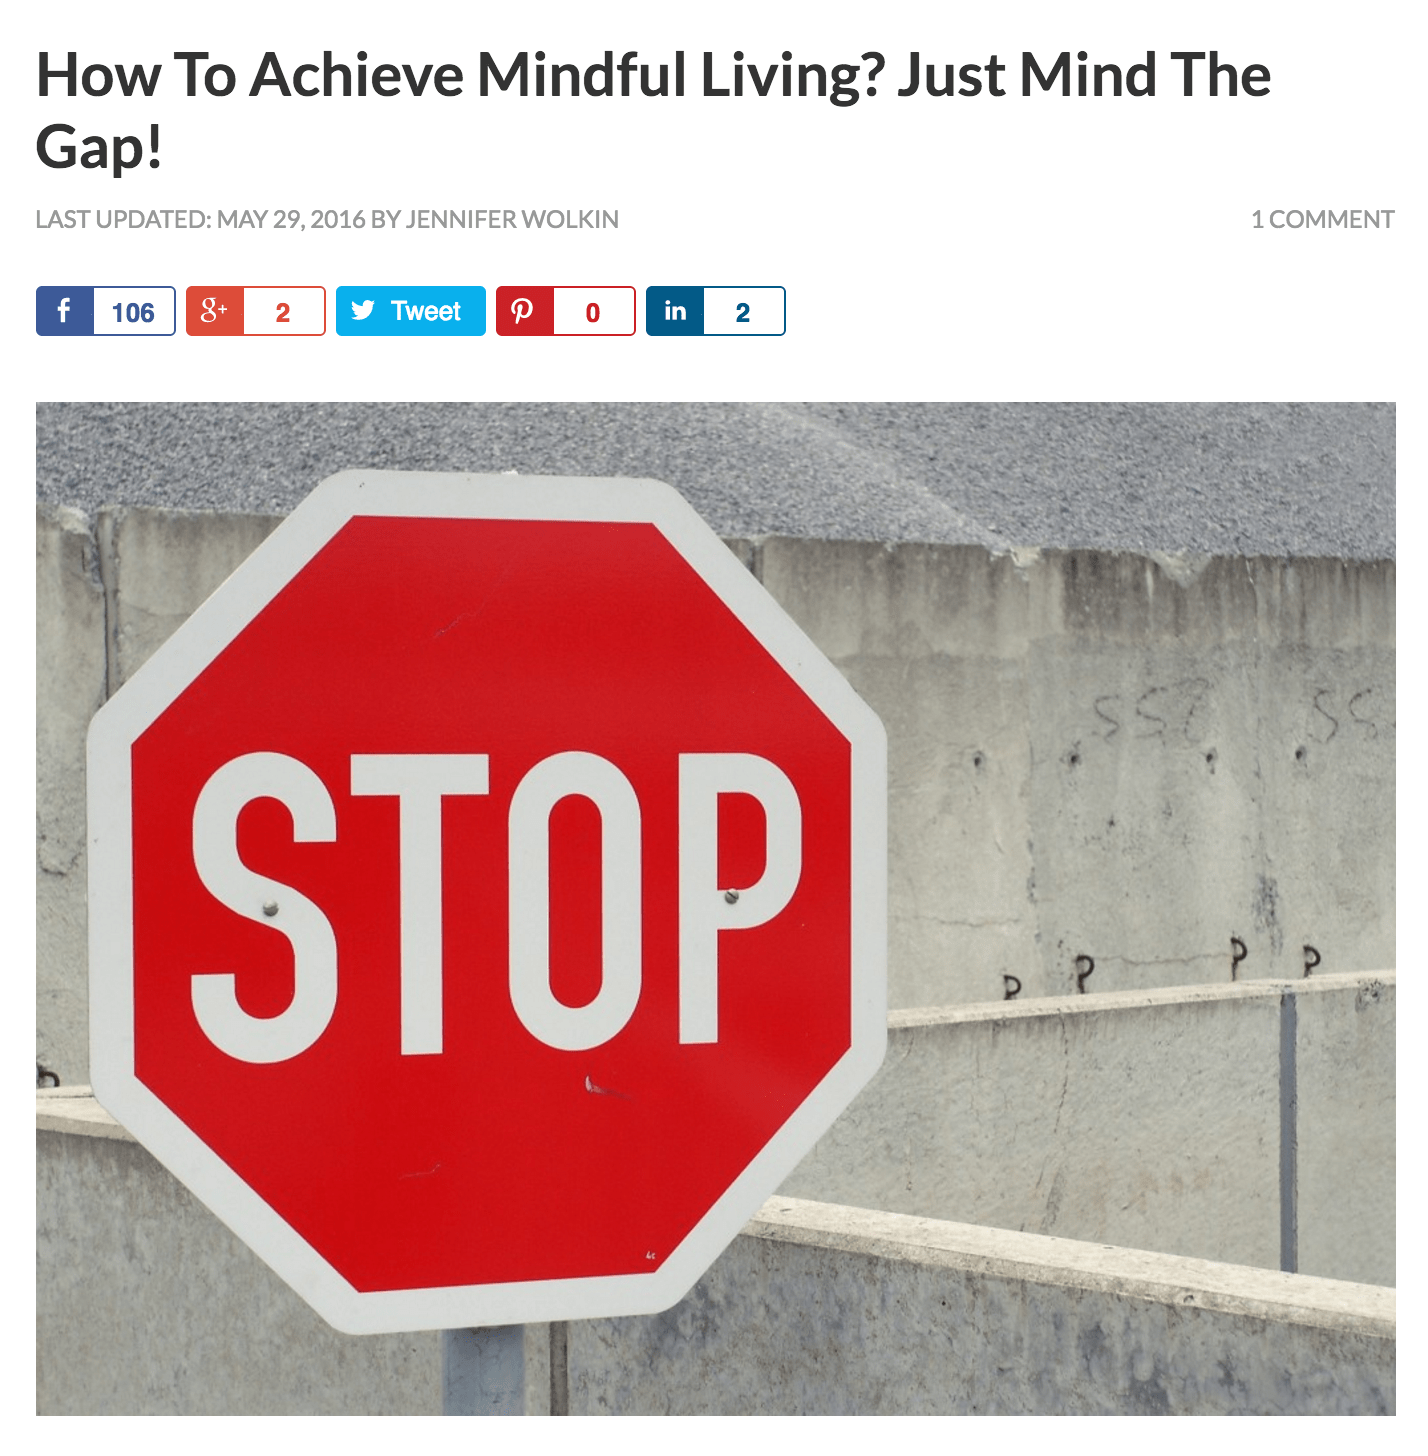 Repost: How To Achieve Mindful Living? Just Mind The Gap!